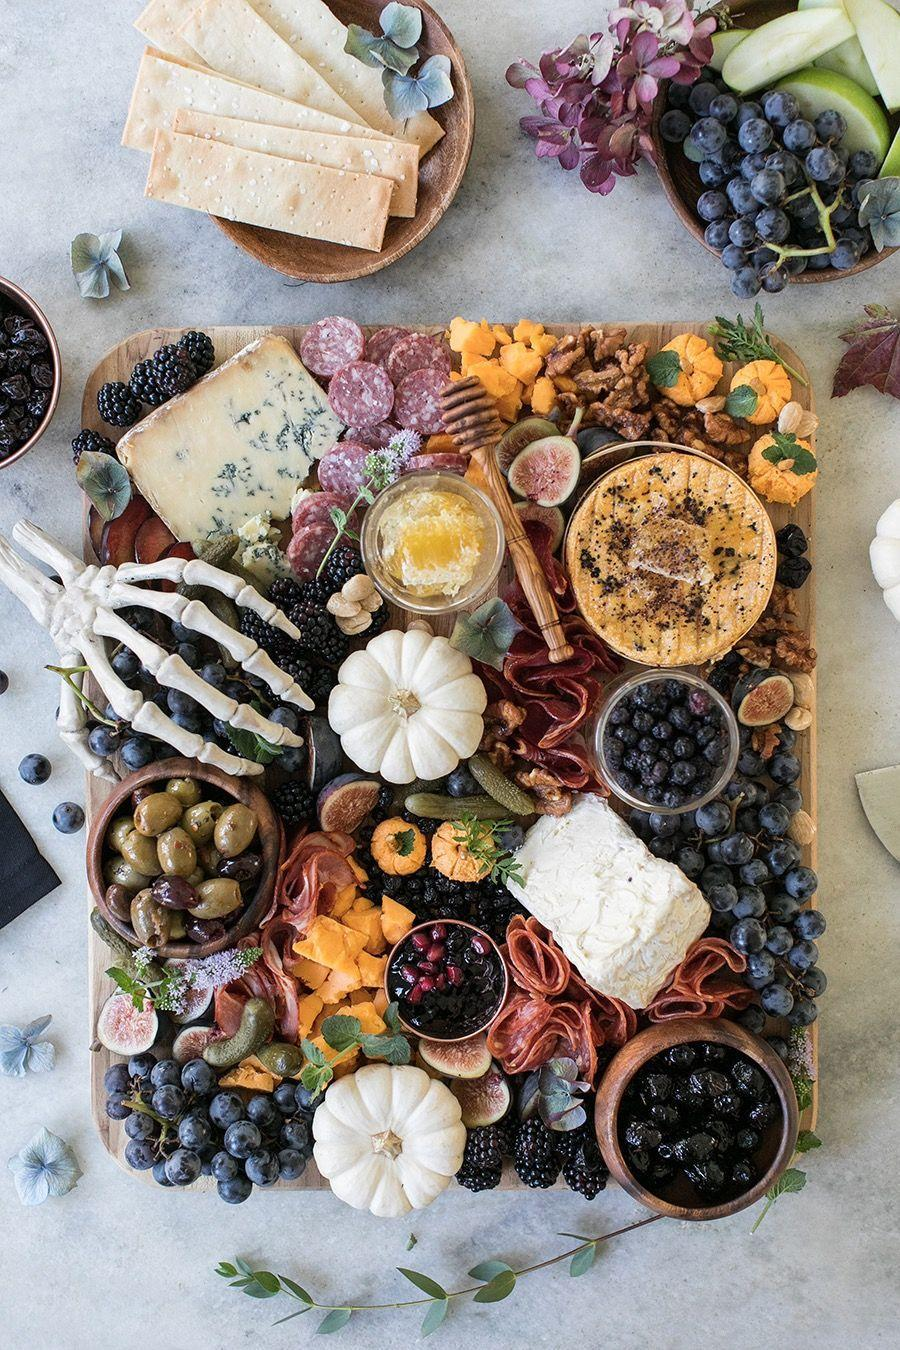 """<p>This elegant board highlights the colors of fall, with fun details like the skeleton hand for Halloween flair. It's perfect for a sophisticated Halloween dinner party or romantic evening in.</p><p><a class=""""link rapid-noclick-resp"""" href=""""https://sugarandcharm.com/how-to-make-the-perfect-halloween-meat-and-cheese-board"""" rel=""""nofollow noopener"""" target=""""_blank"""" data-ylk=""""slk:GET THE RECIPE"""">GET THE RECIPE</a></p>"""